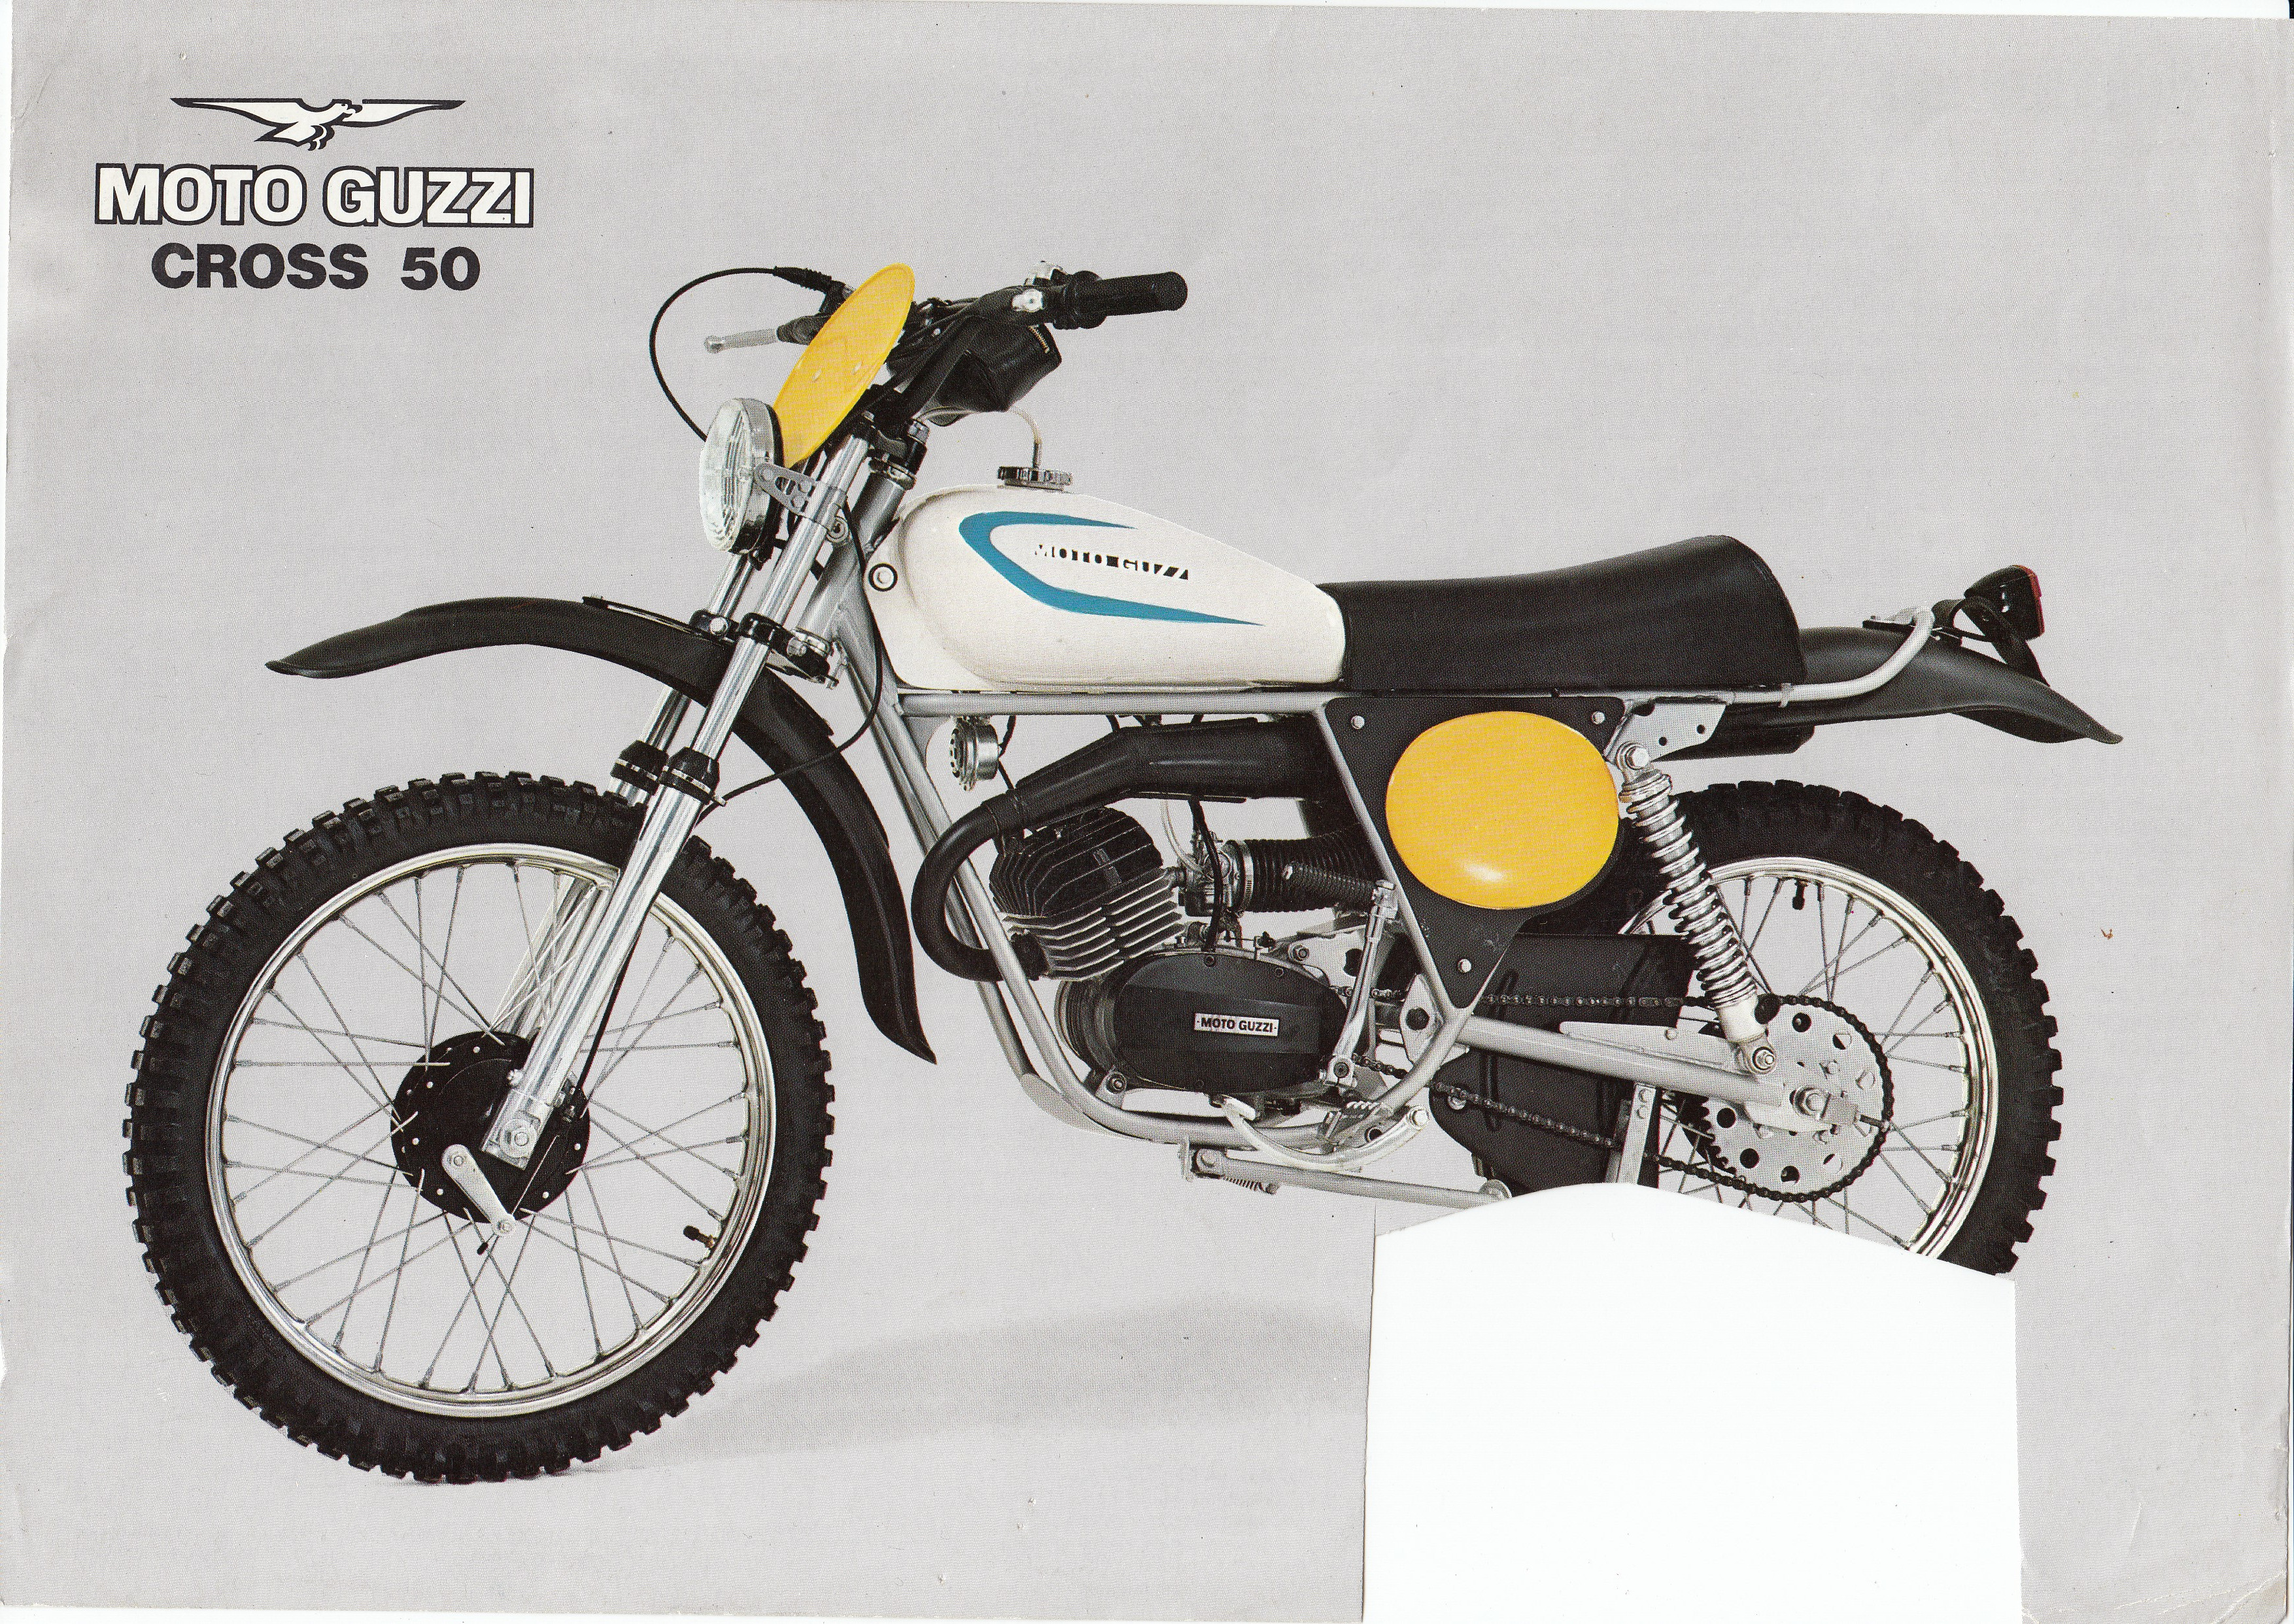 Brochure - Moto Guzzi Cross 50